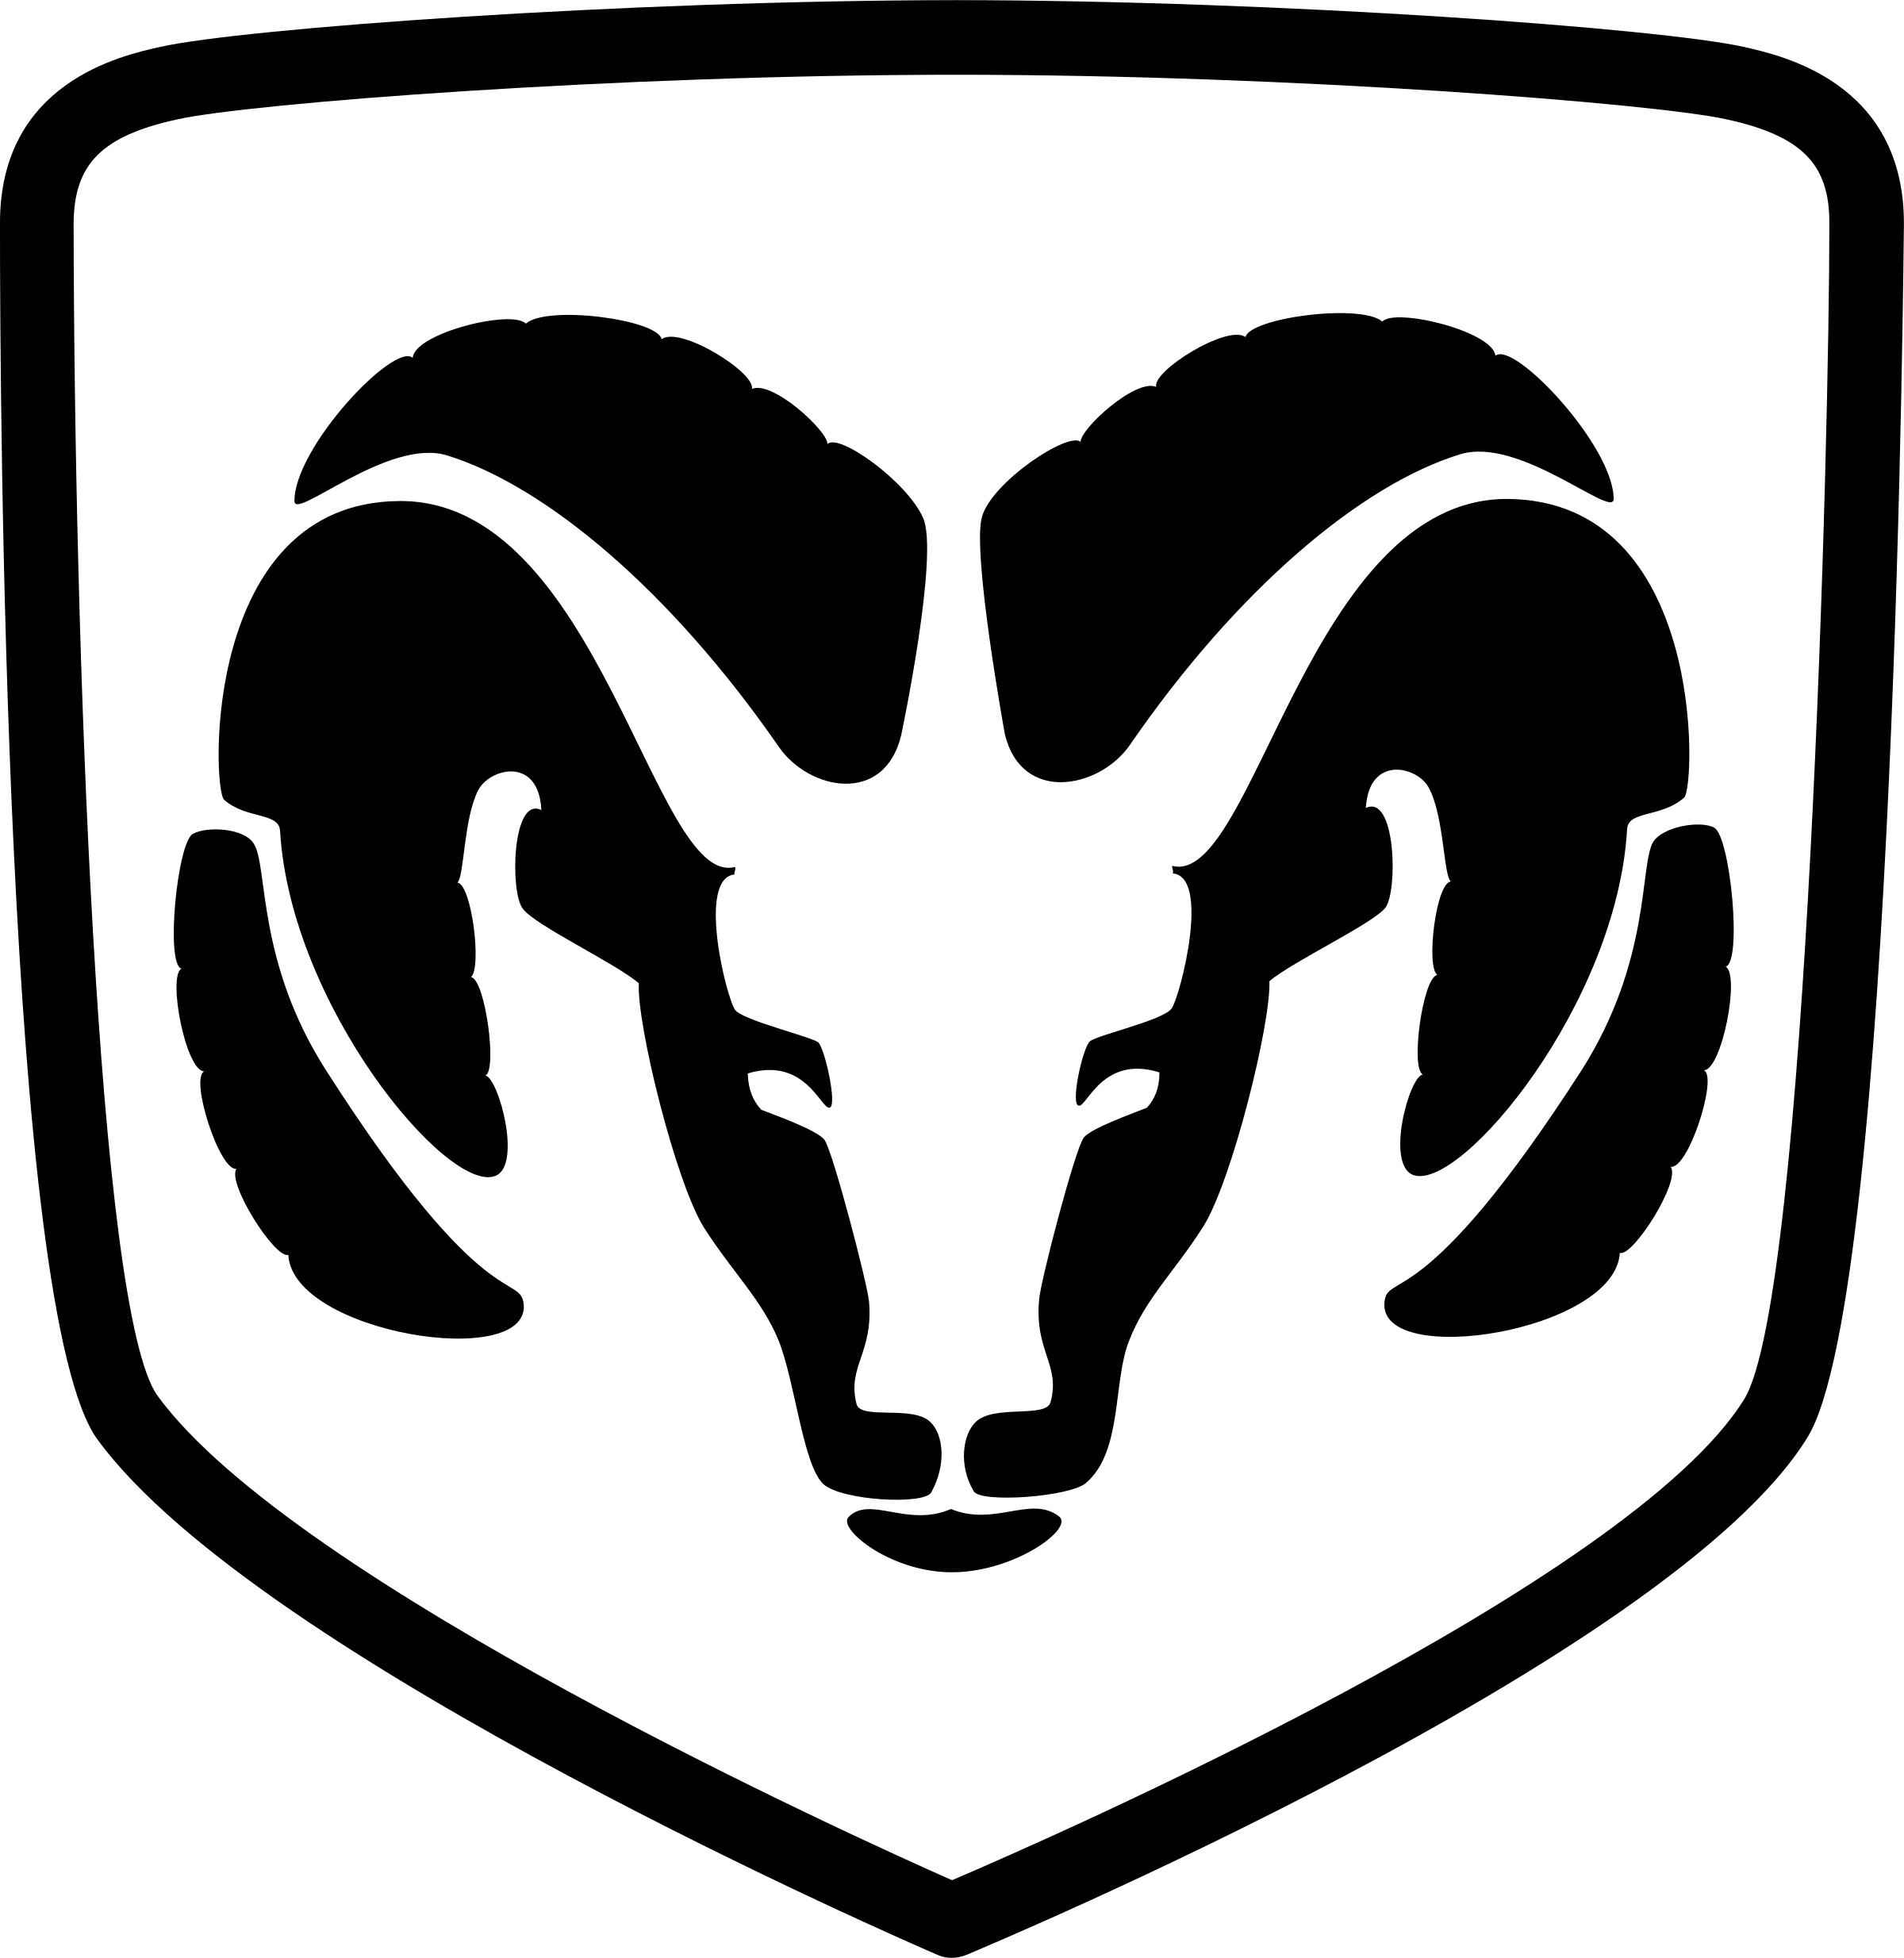 Aries vector black and white. Dodge ram logo png